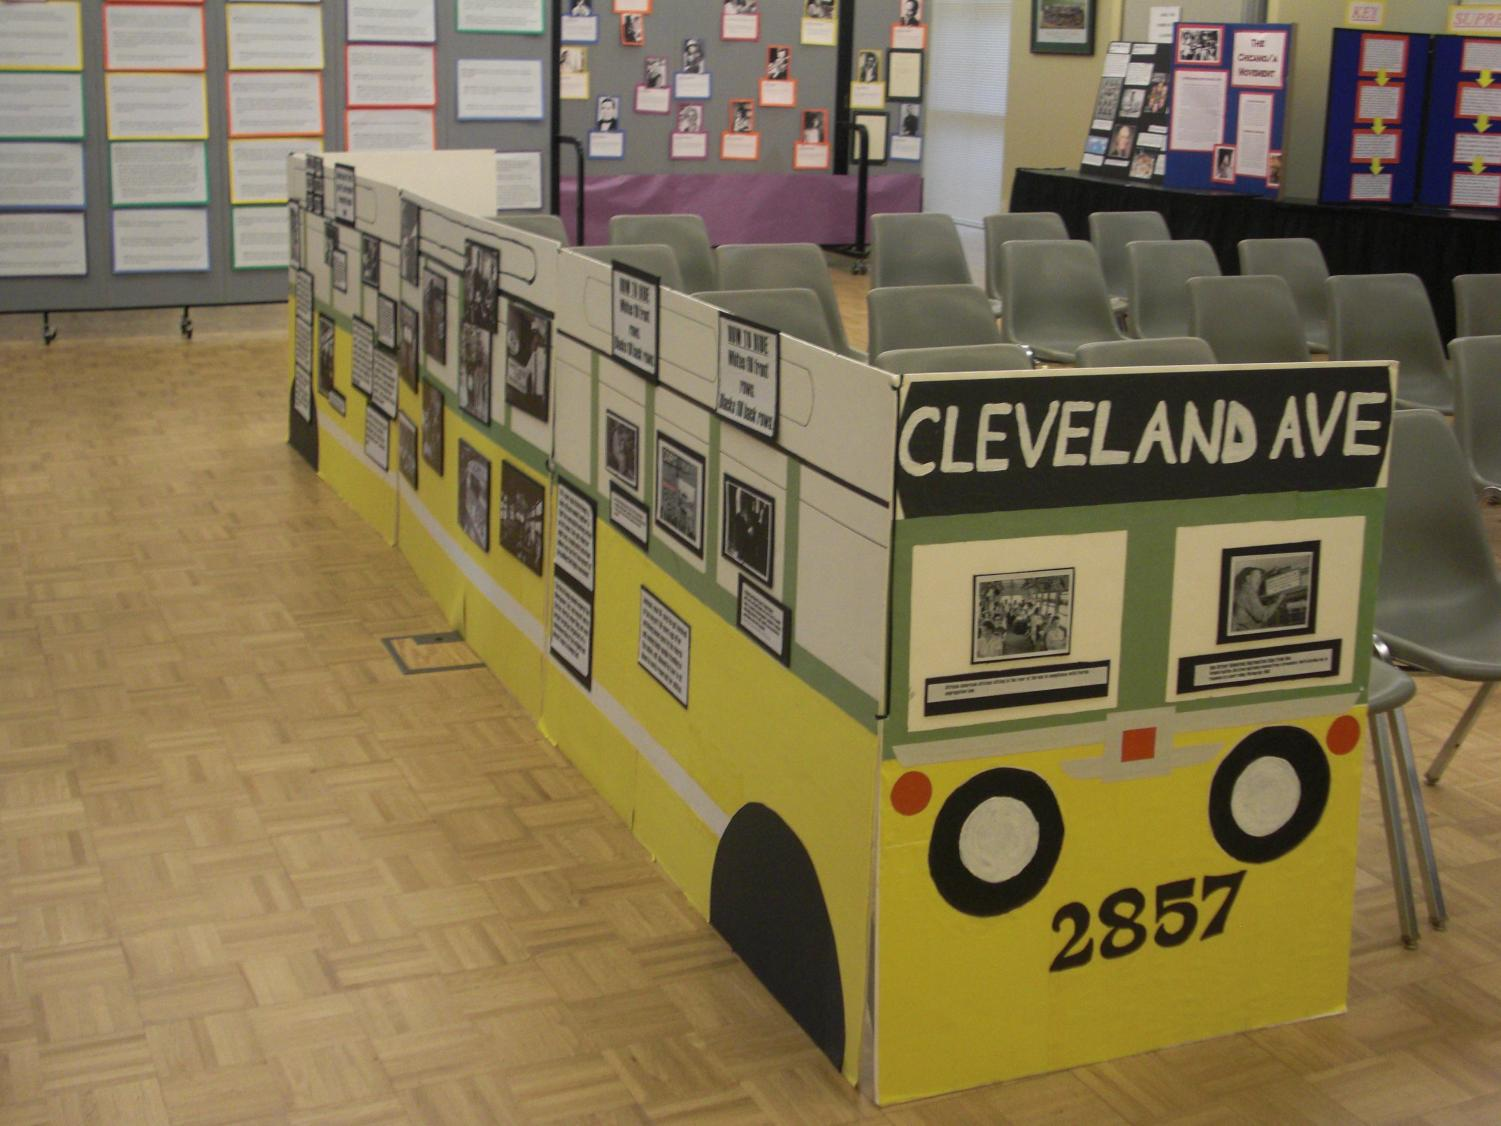 The educational exhibit will teach visitors about important figures like Martin Luther King Jr., Freedom Rides and segregation.